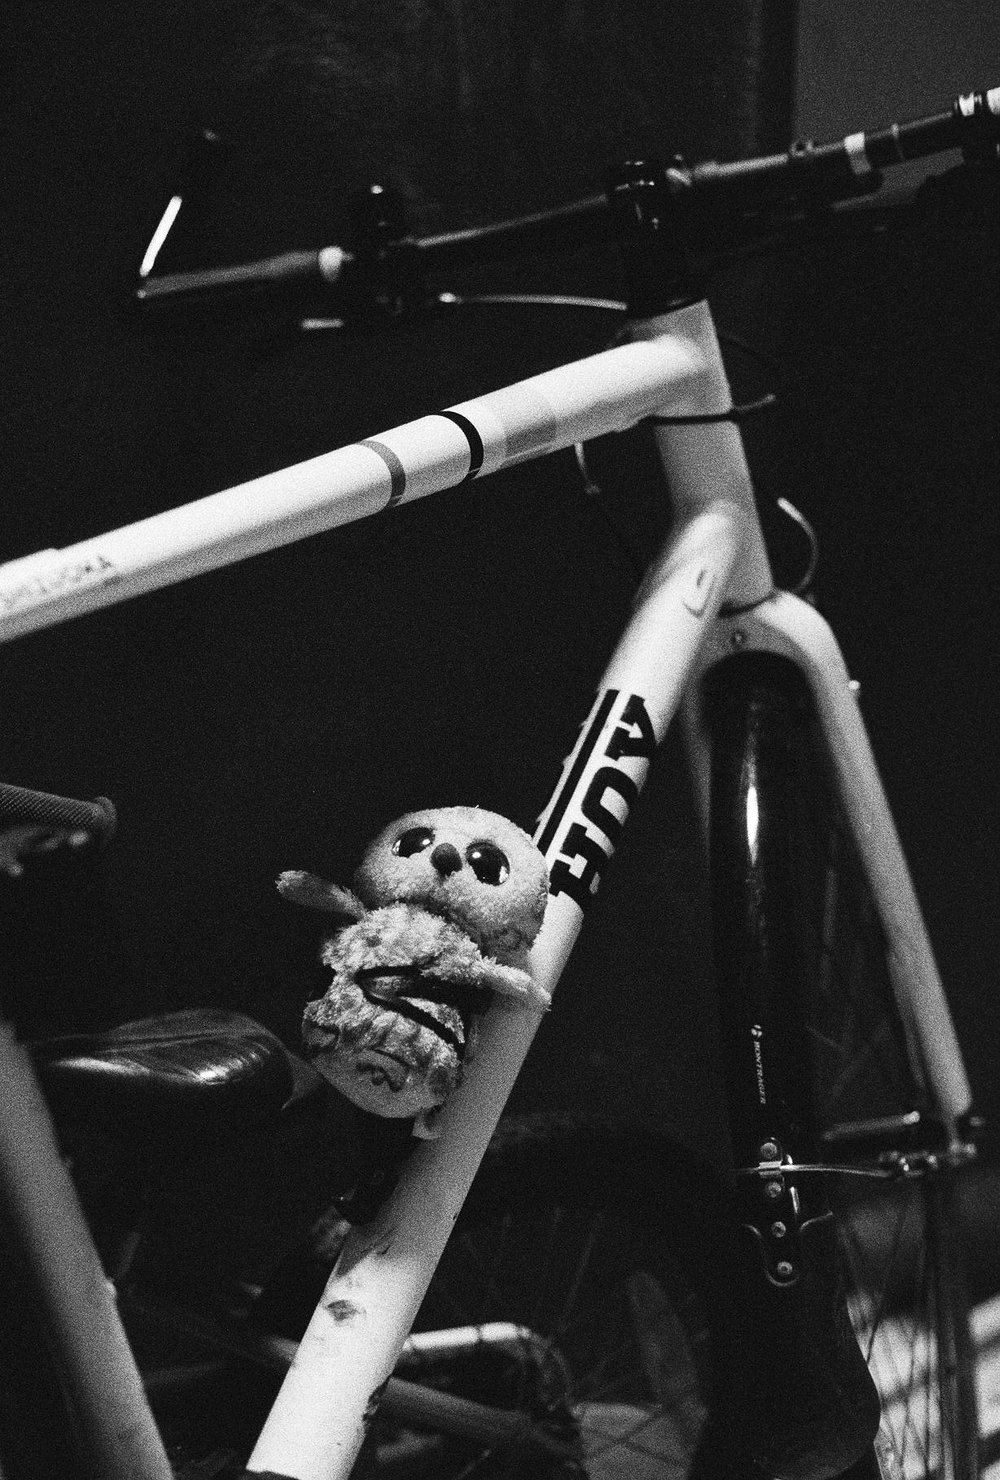 My neghbour's child had left their stuffed owl in the bottle carrier of their bike in the stairwell, I had a roll of Delta 3200 to test in low light situations and thus this photo. It's a very grainy film and the lens must've been wide open which adds a certain atmosphere, as does the fact that all the light on the scene is falling on that bike and it's passenger.